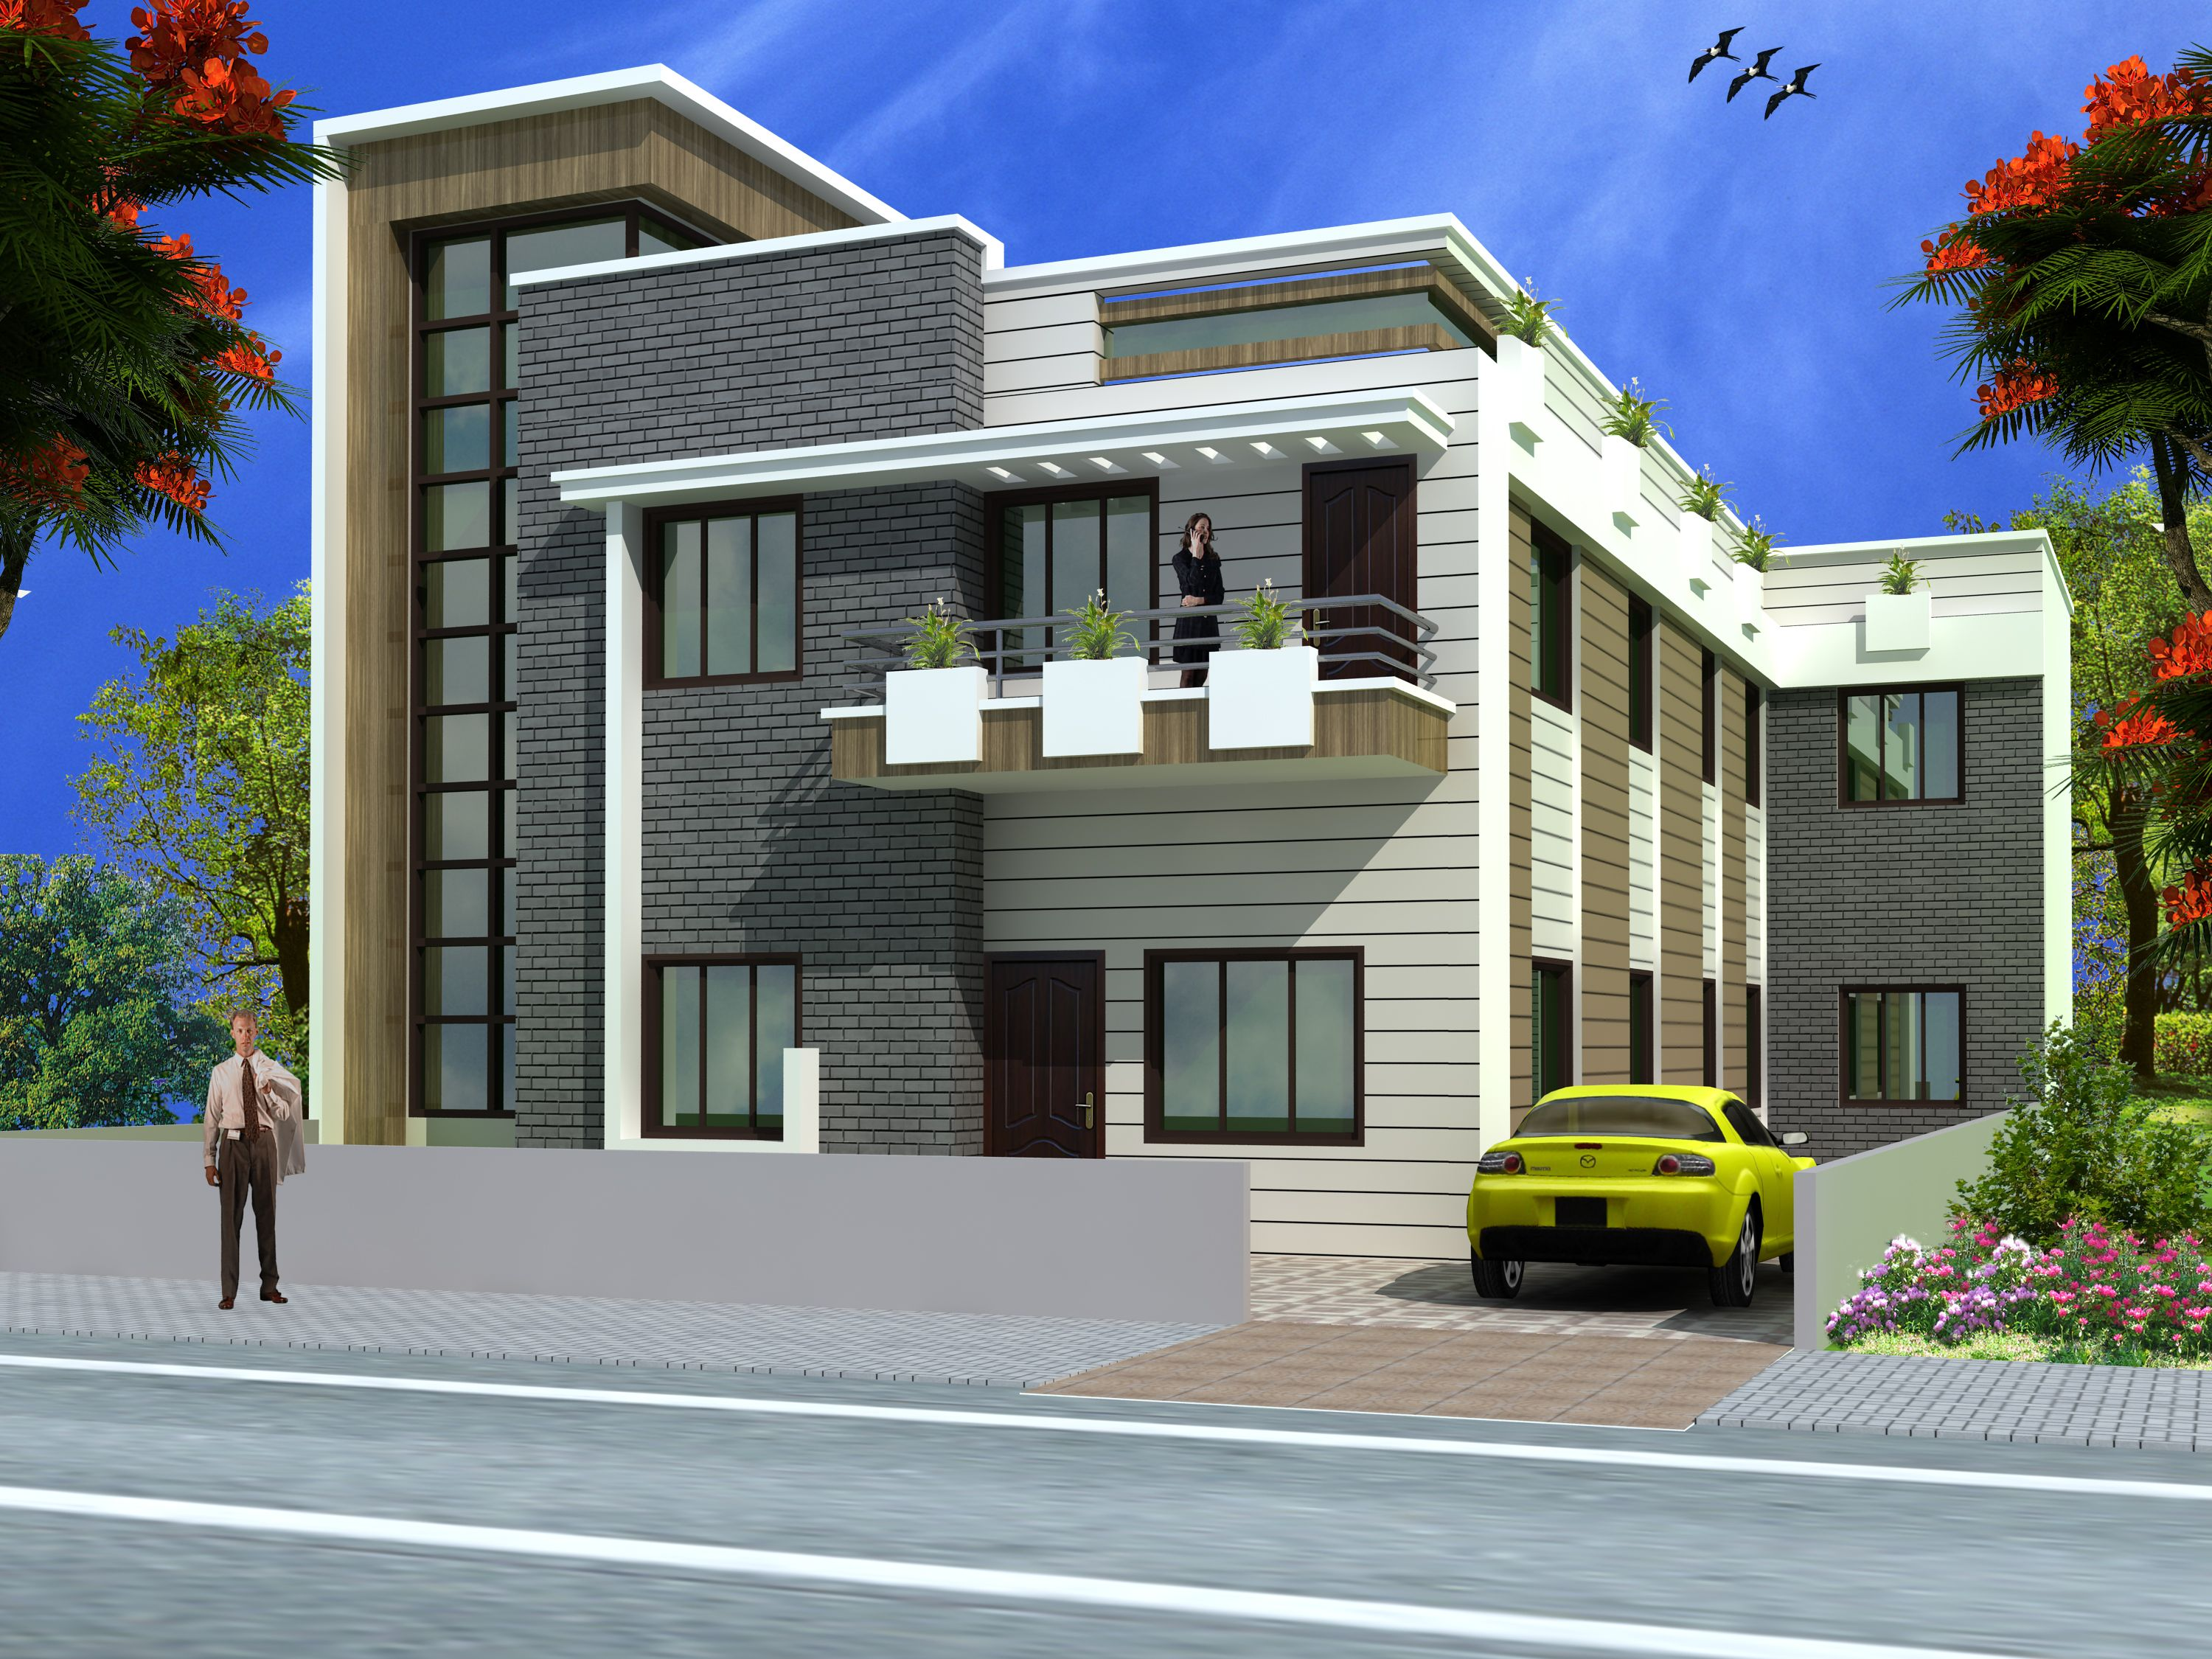 1e557fa0f04b26c2b2cb22d9e5ef0e6a front elevation of house design in india house plans and ideas,Pre Designed House Plans